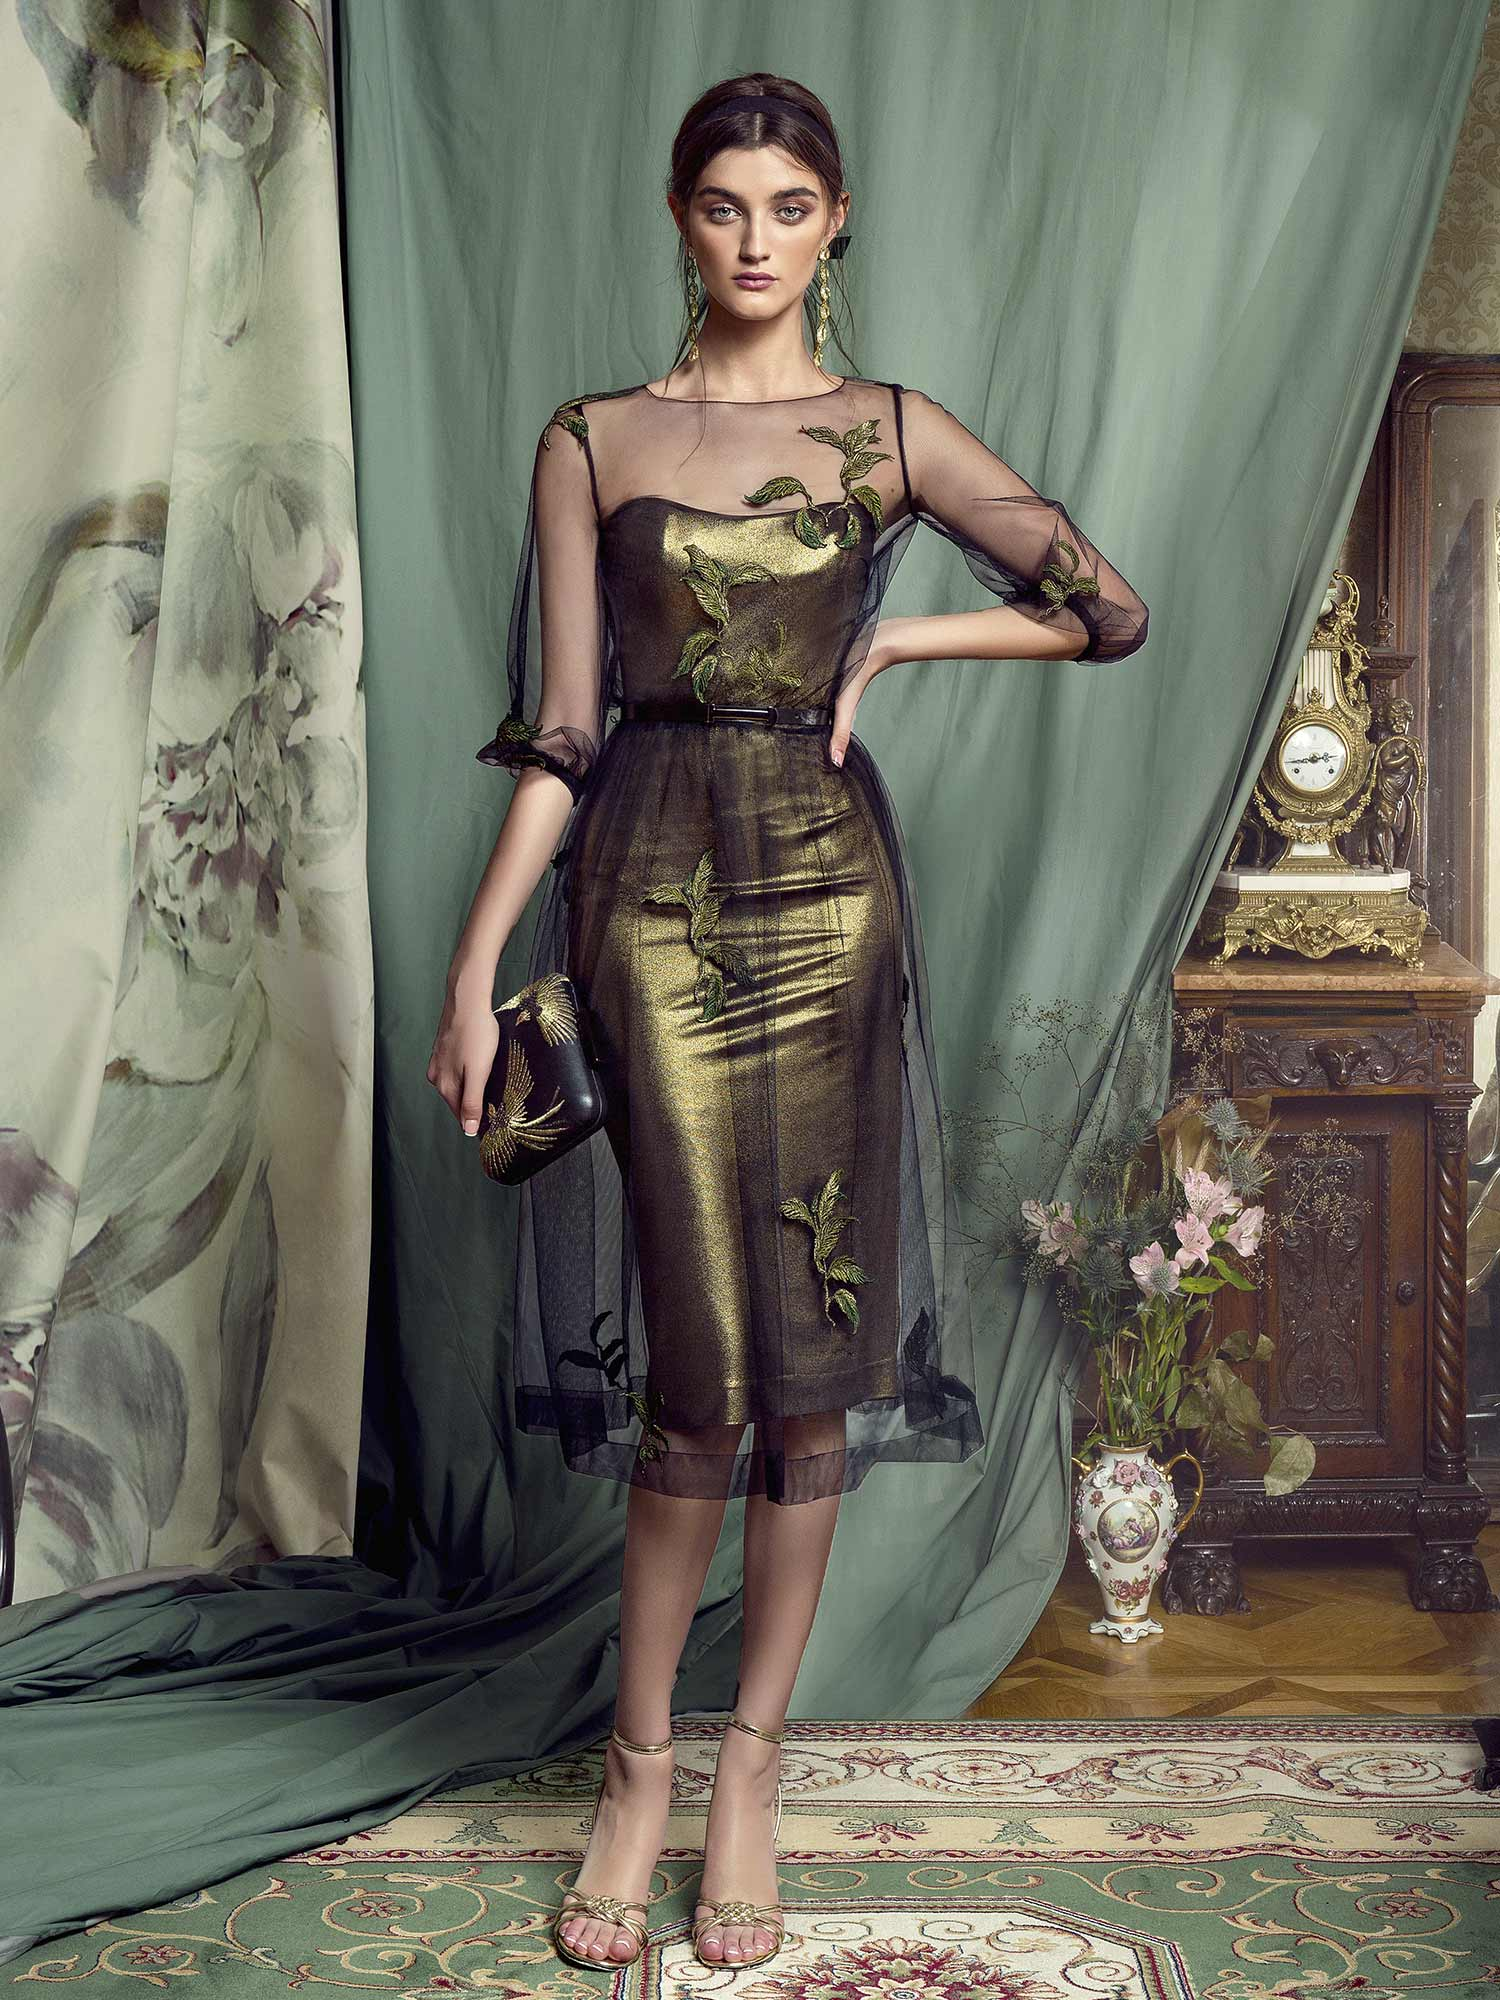 Style #443, available in gold-black